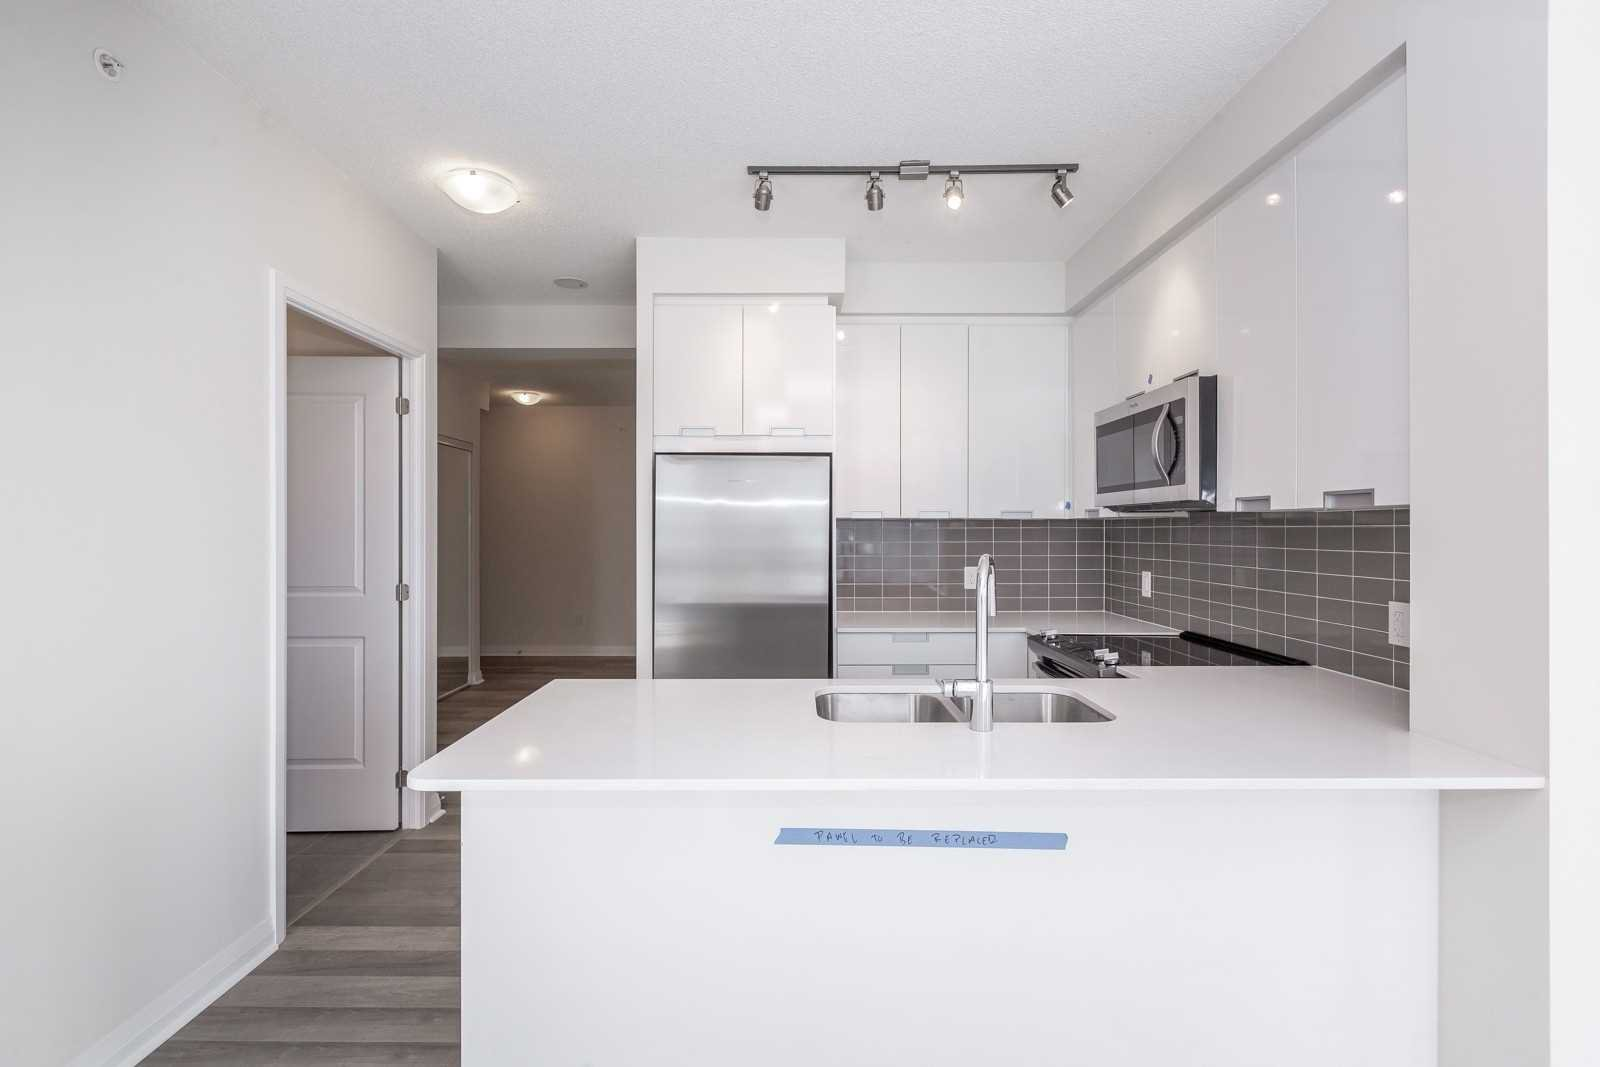 Photo 3: Photos: 1204 5025 Four Springs Avenue in Mississauga: Hurontario Condo for lease : MLS®# W4582092